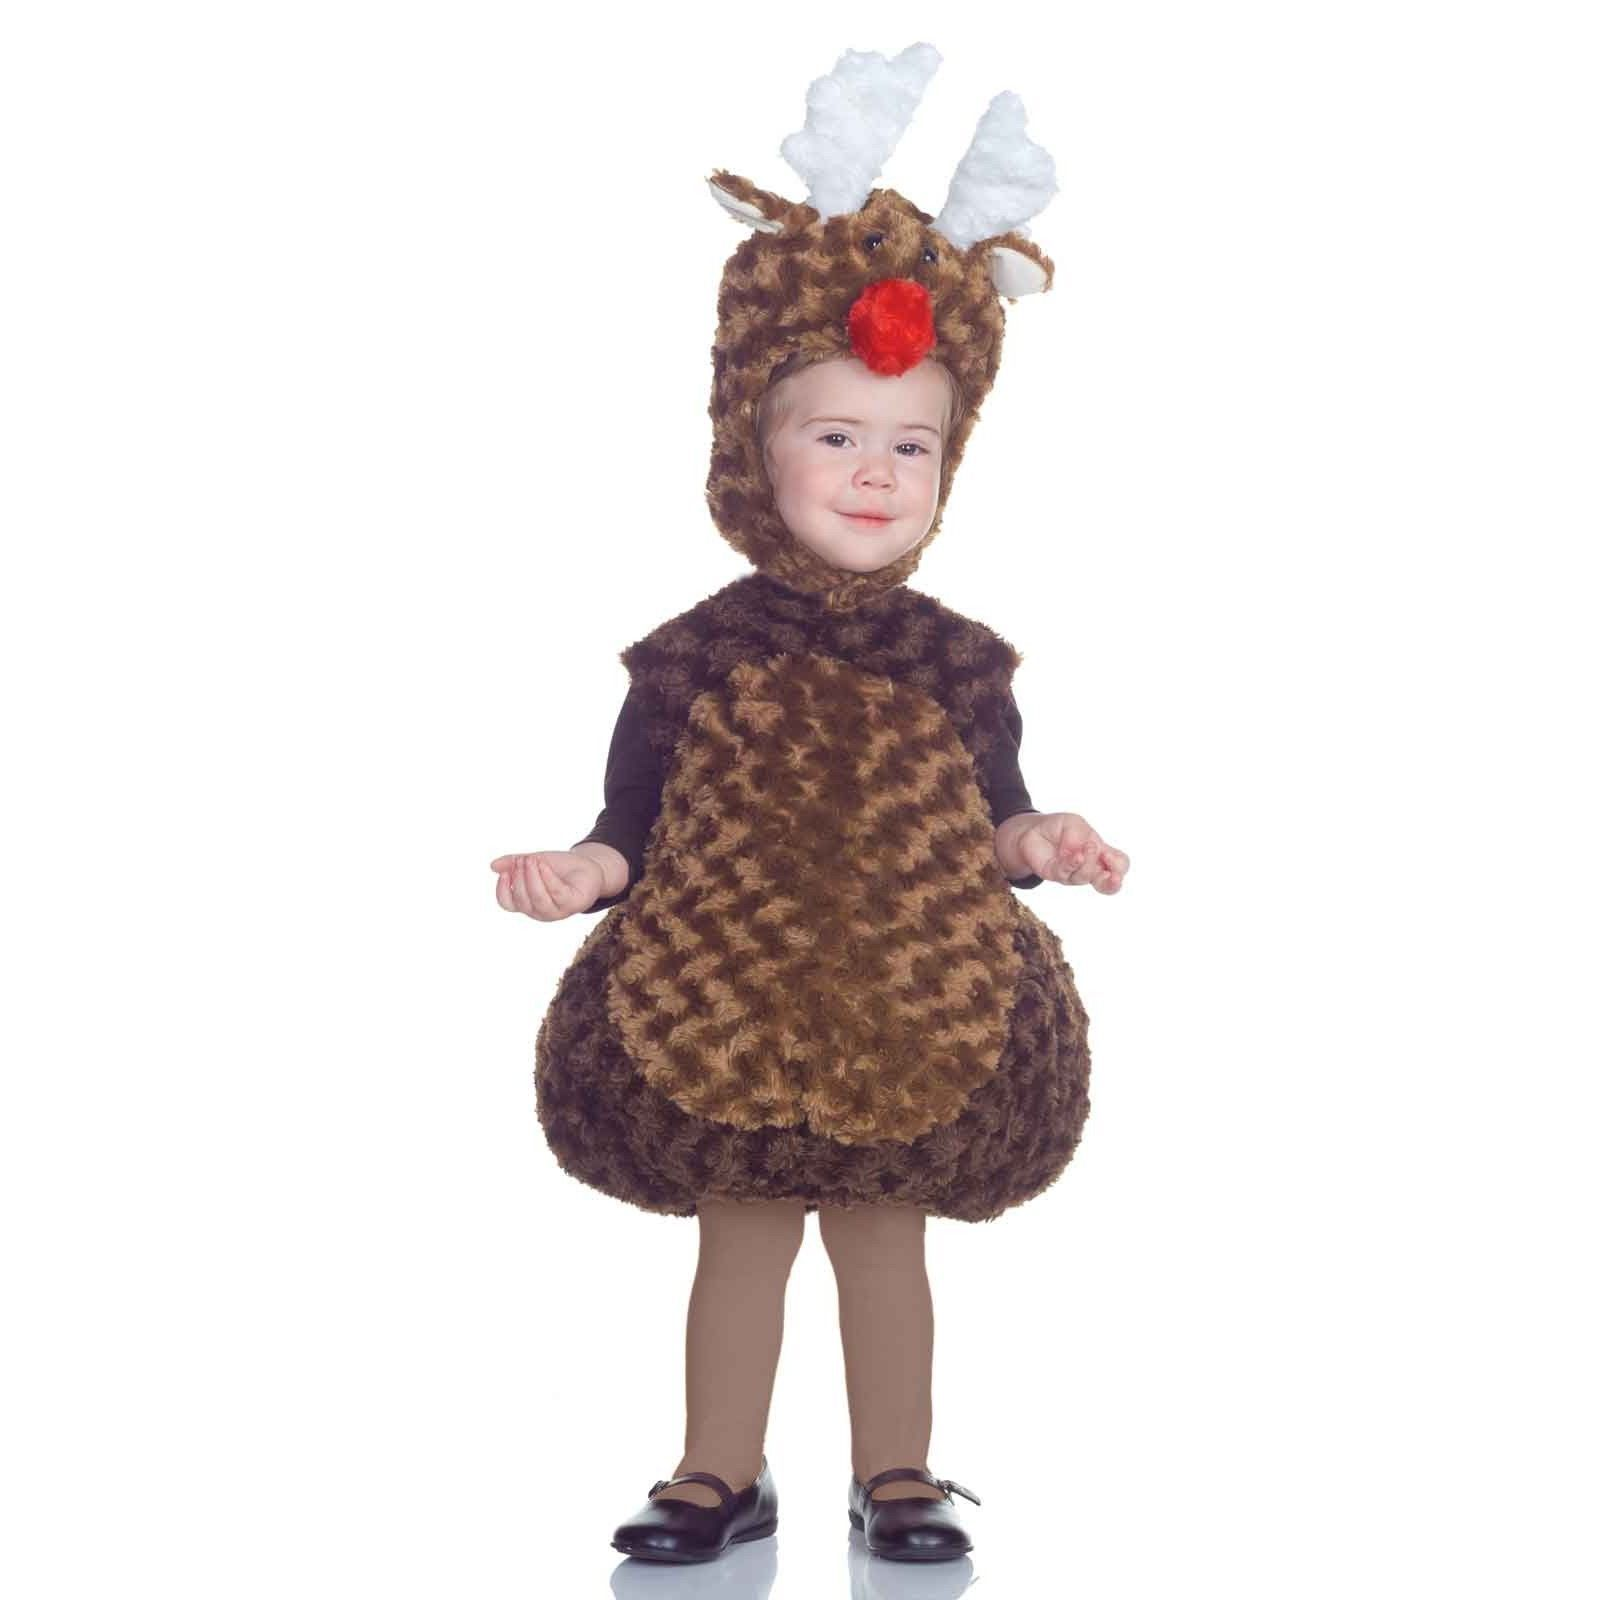 NEW NIP Toddler Underwraps Reindeer Christmas Costume 18-24 Months or 2T-4T